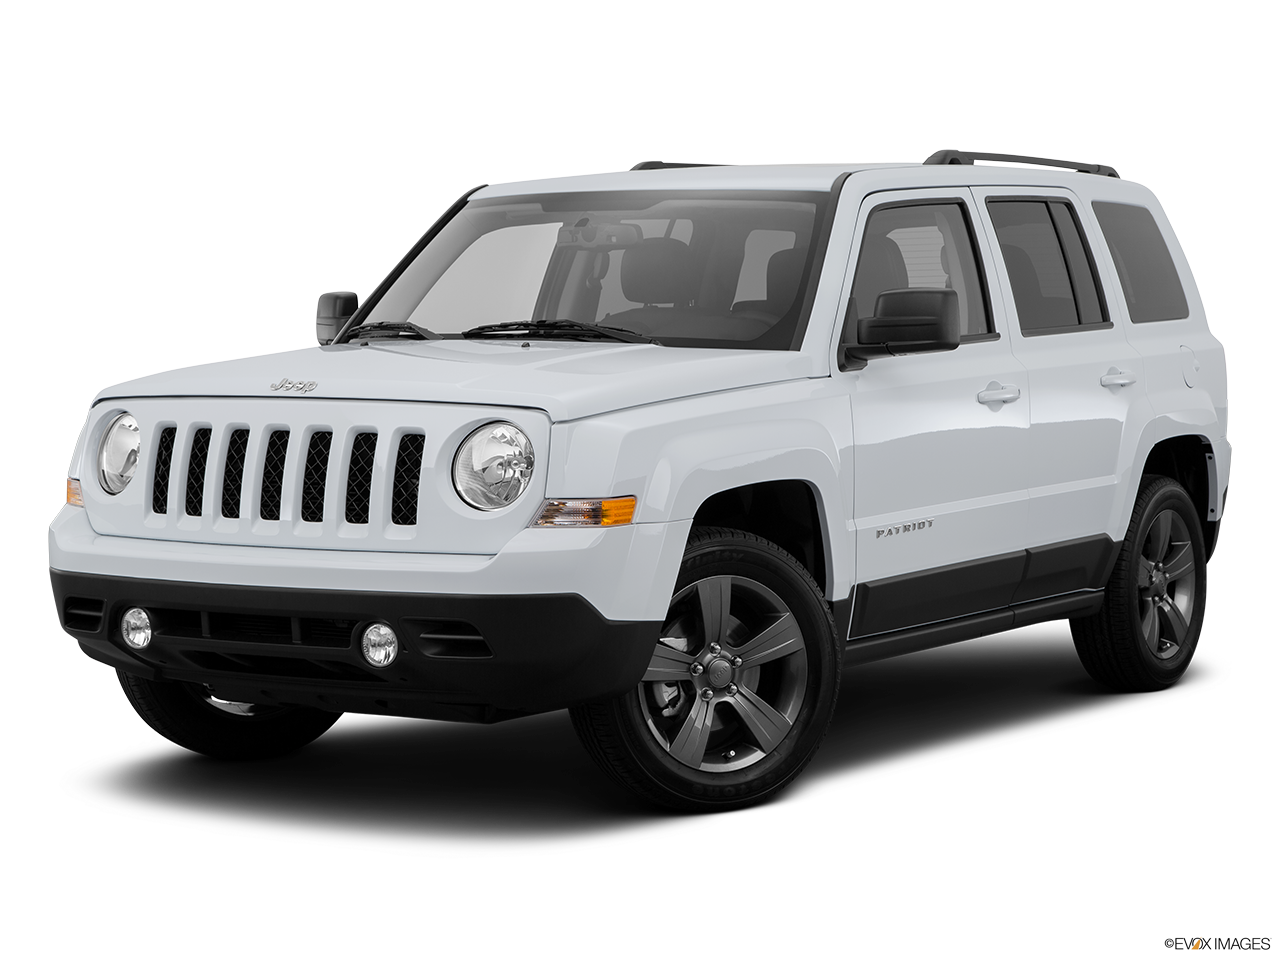 Test Drive A 2015 Jeep Patriot at Huntington Beach Chrysler Dodge Jeep Ram in Huntington Beach